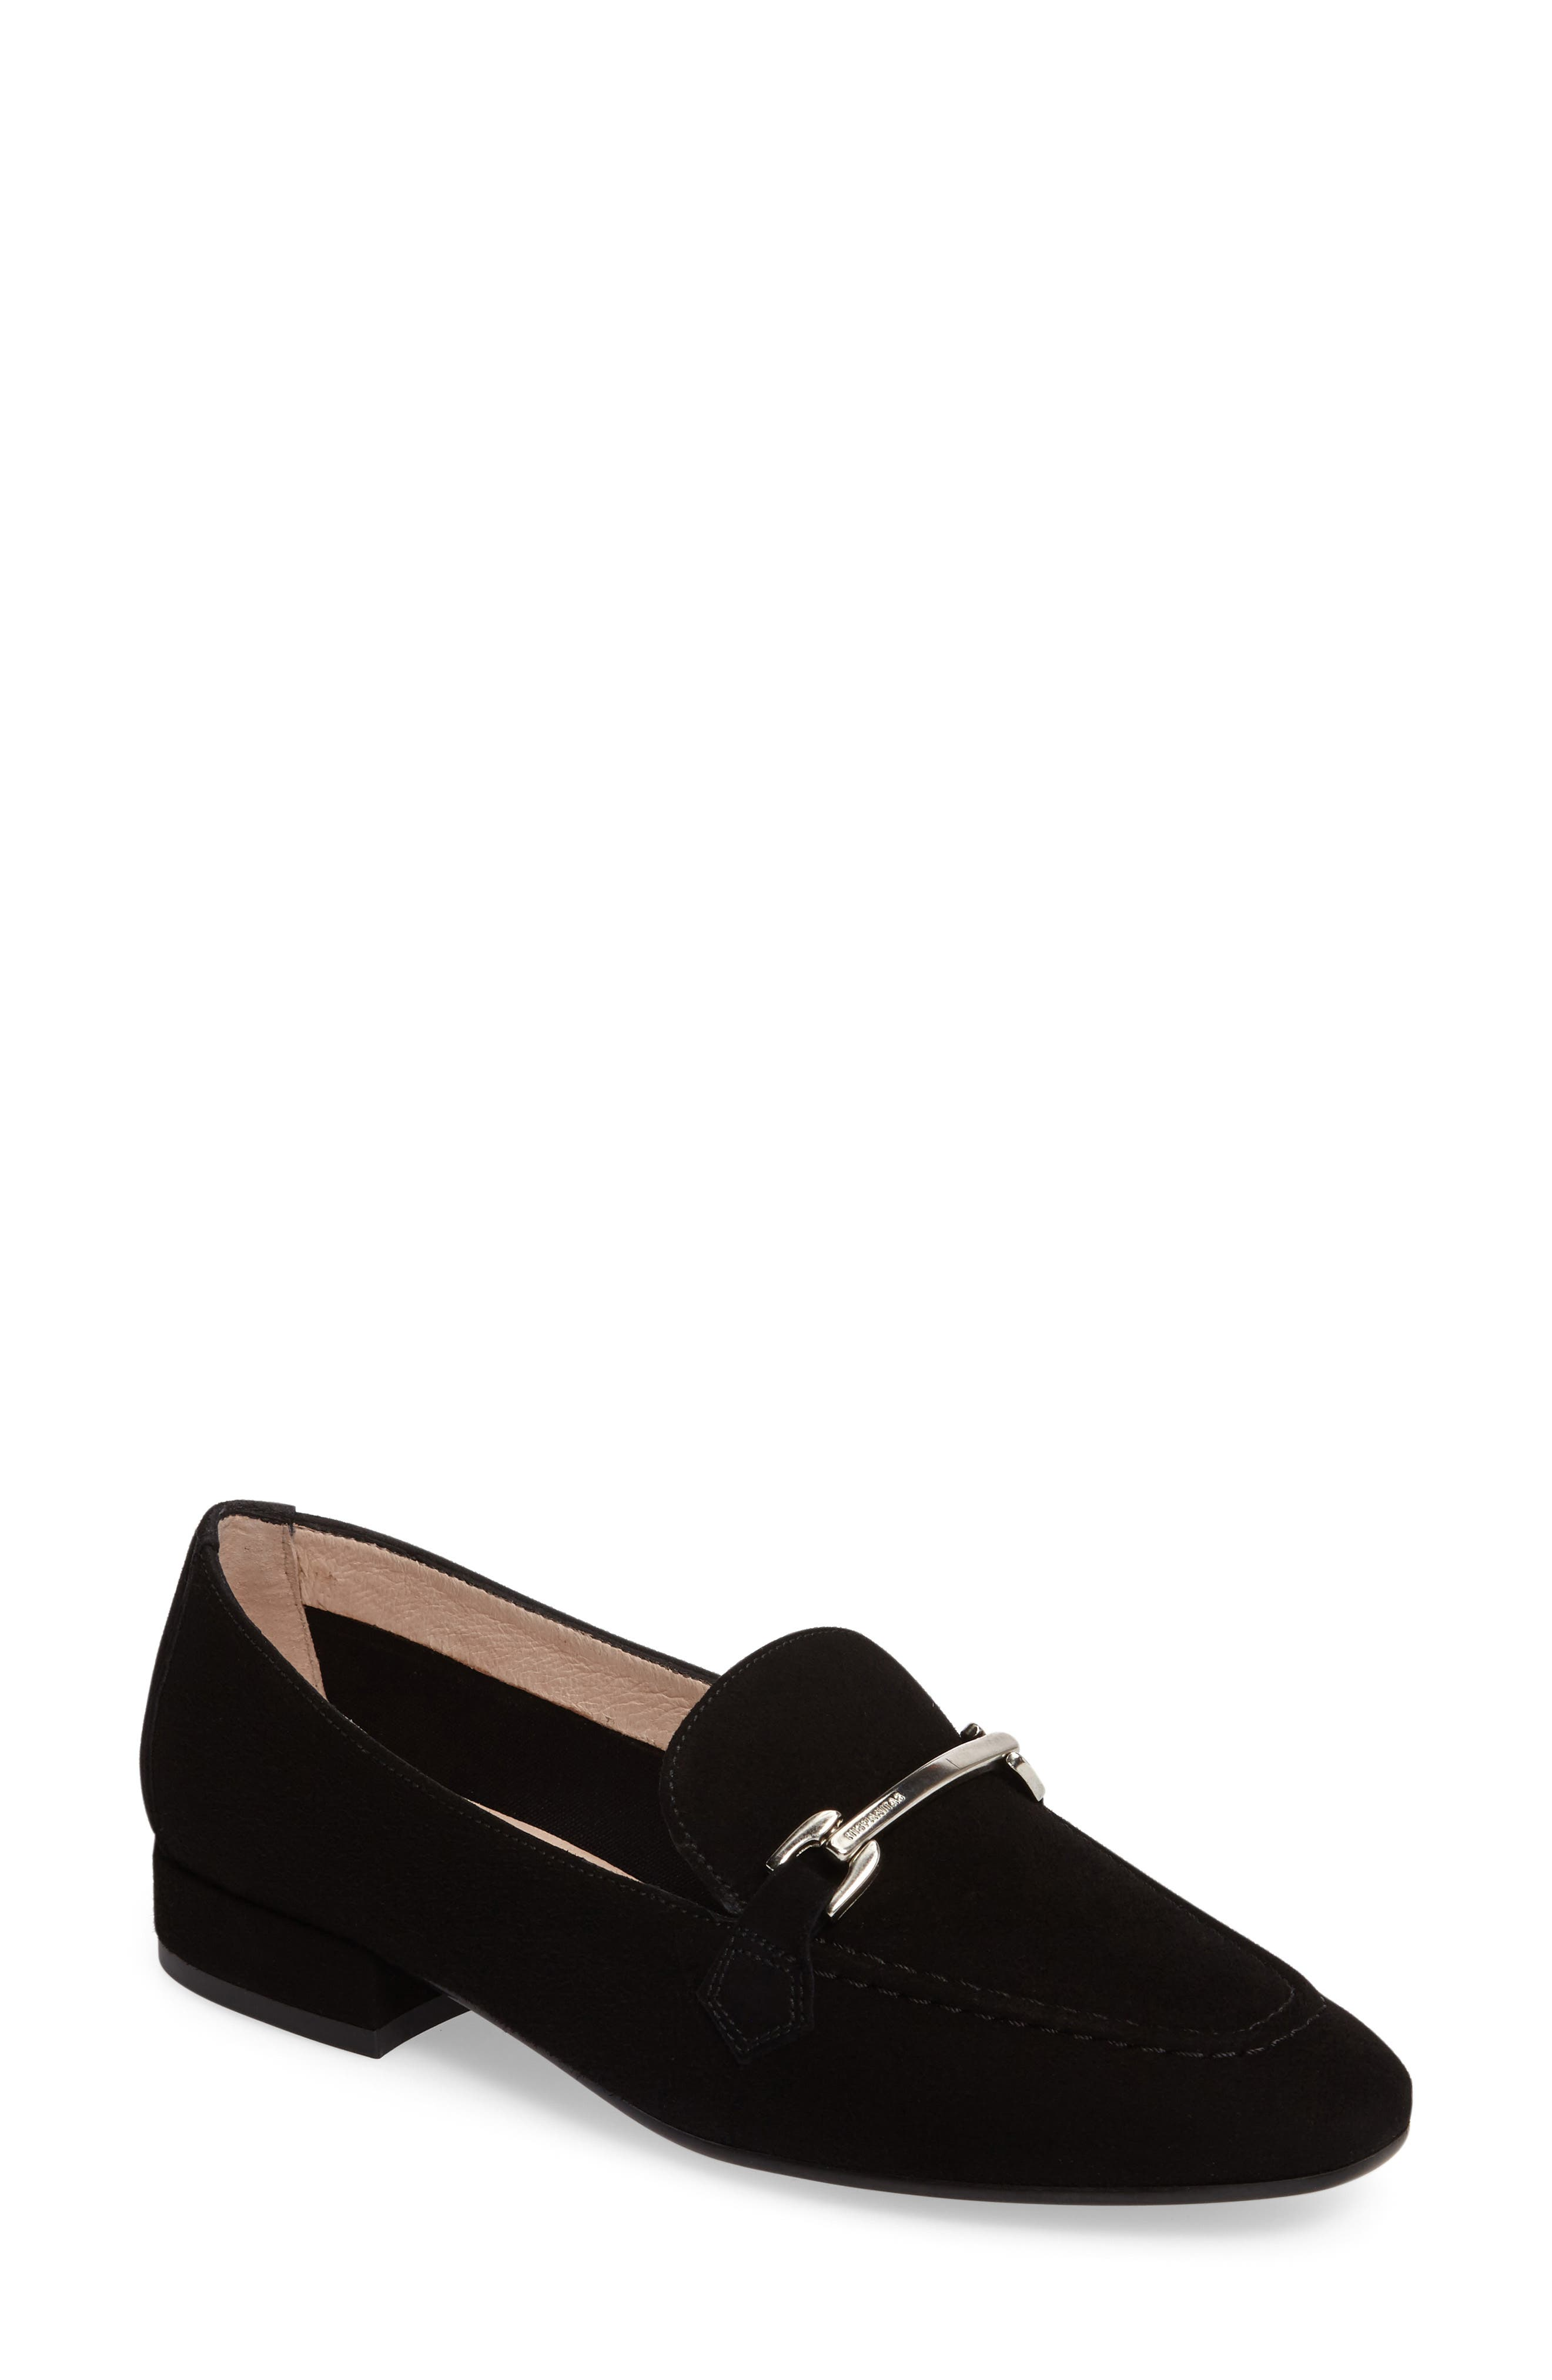 Evelyn Loafer,                         Main,                         color, BLACK FABRIC